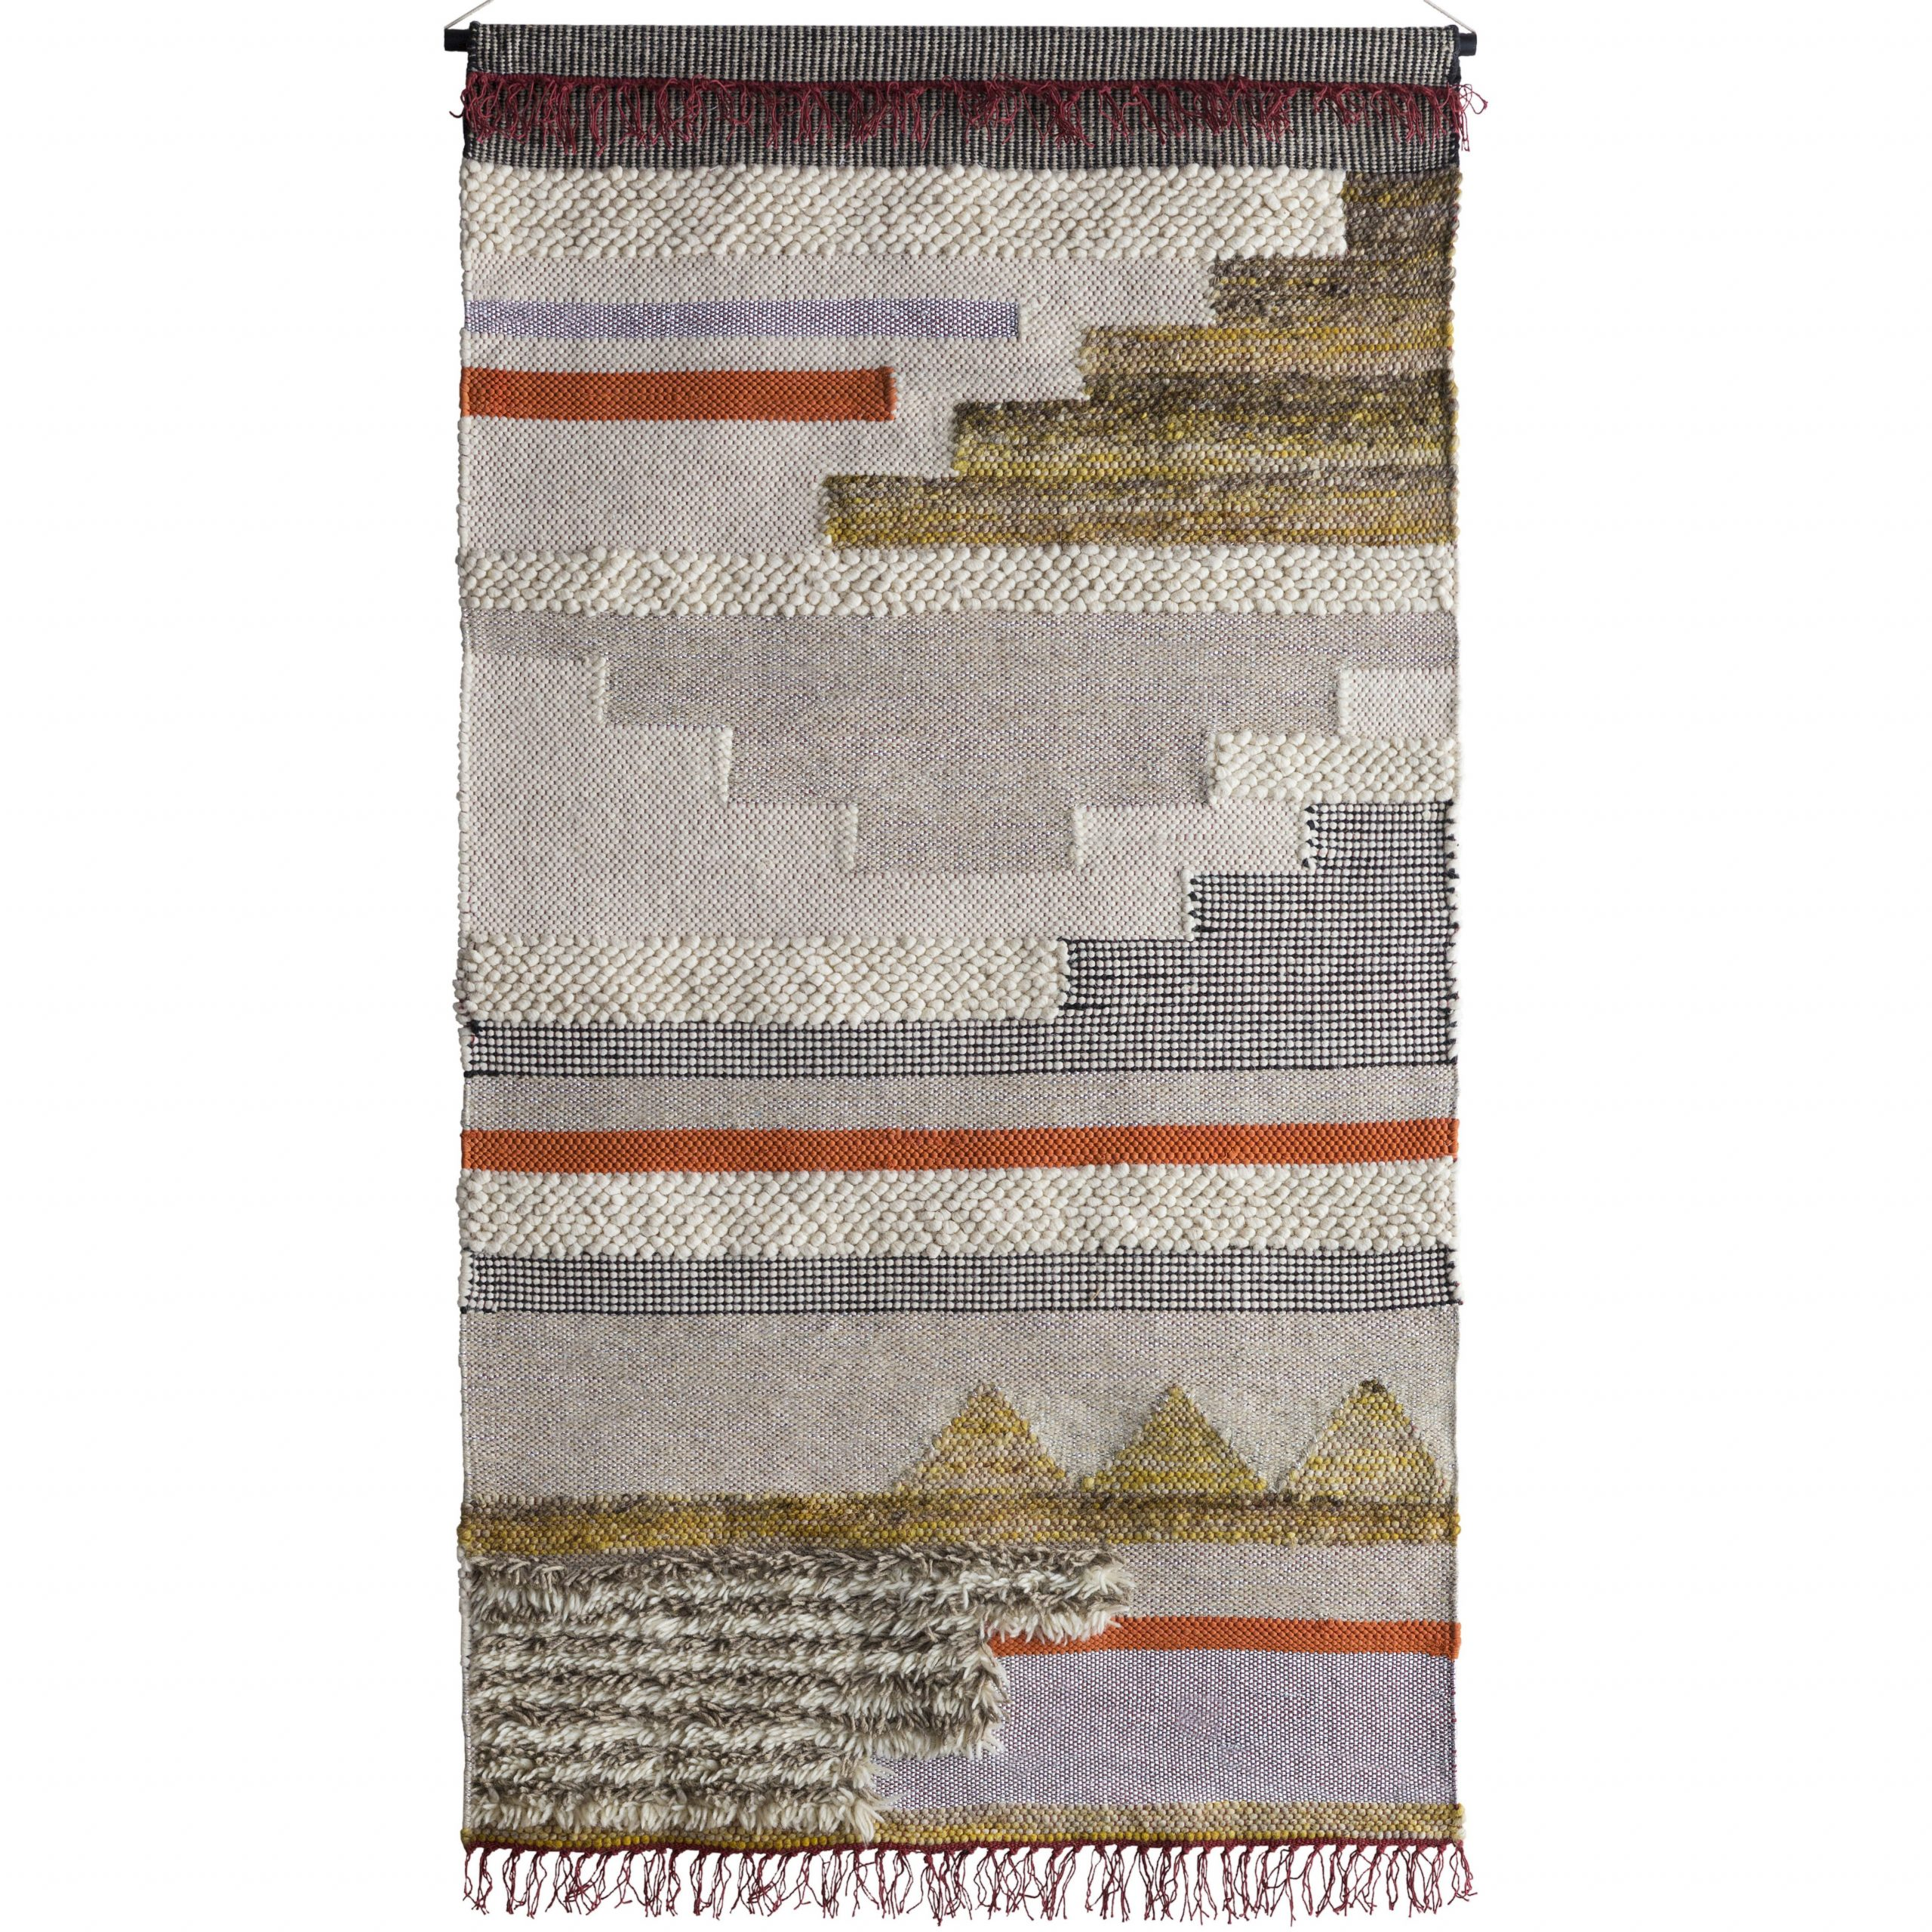 Blended Fabric Wall Hanging With Hanging Accessories Intended For Trendy Blended Fabric In His Tapestries And Wall Hangings (View 3 of 20)